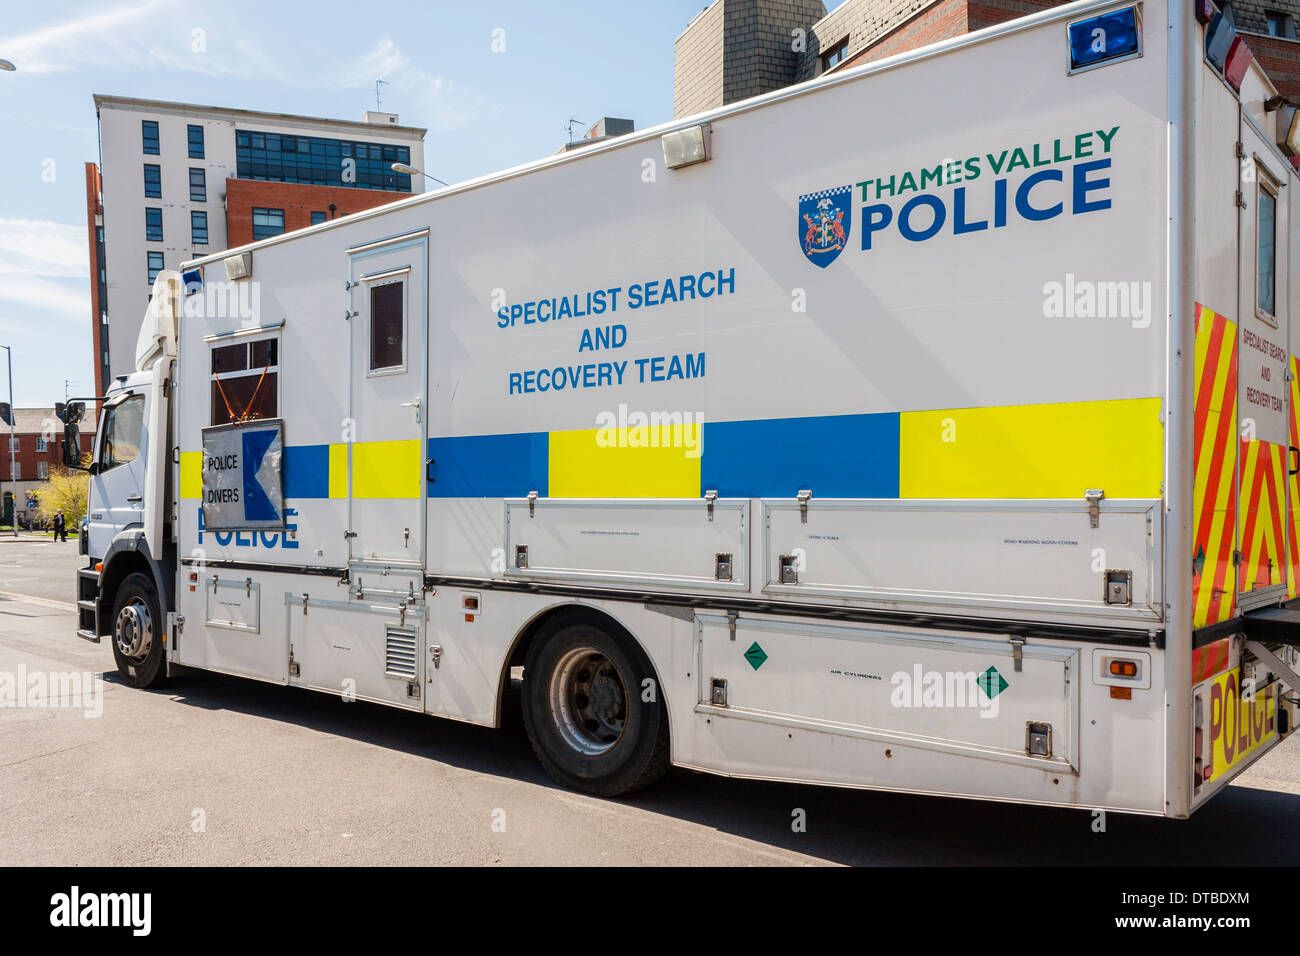 Thames Valley Police Specialist Search and Recovery Team vehicle. Reading town centre, Berkshire, England, GB, UK. - Stock Image